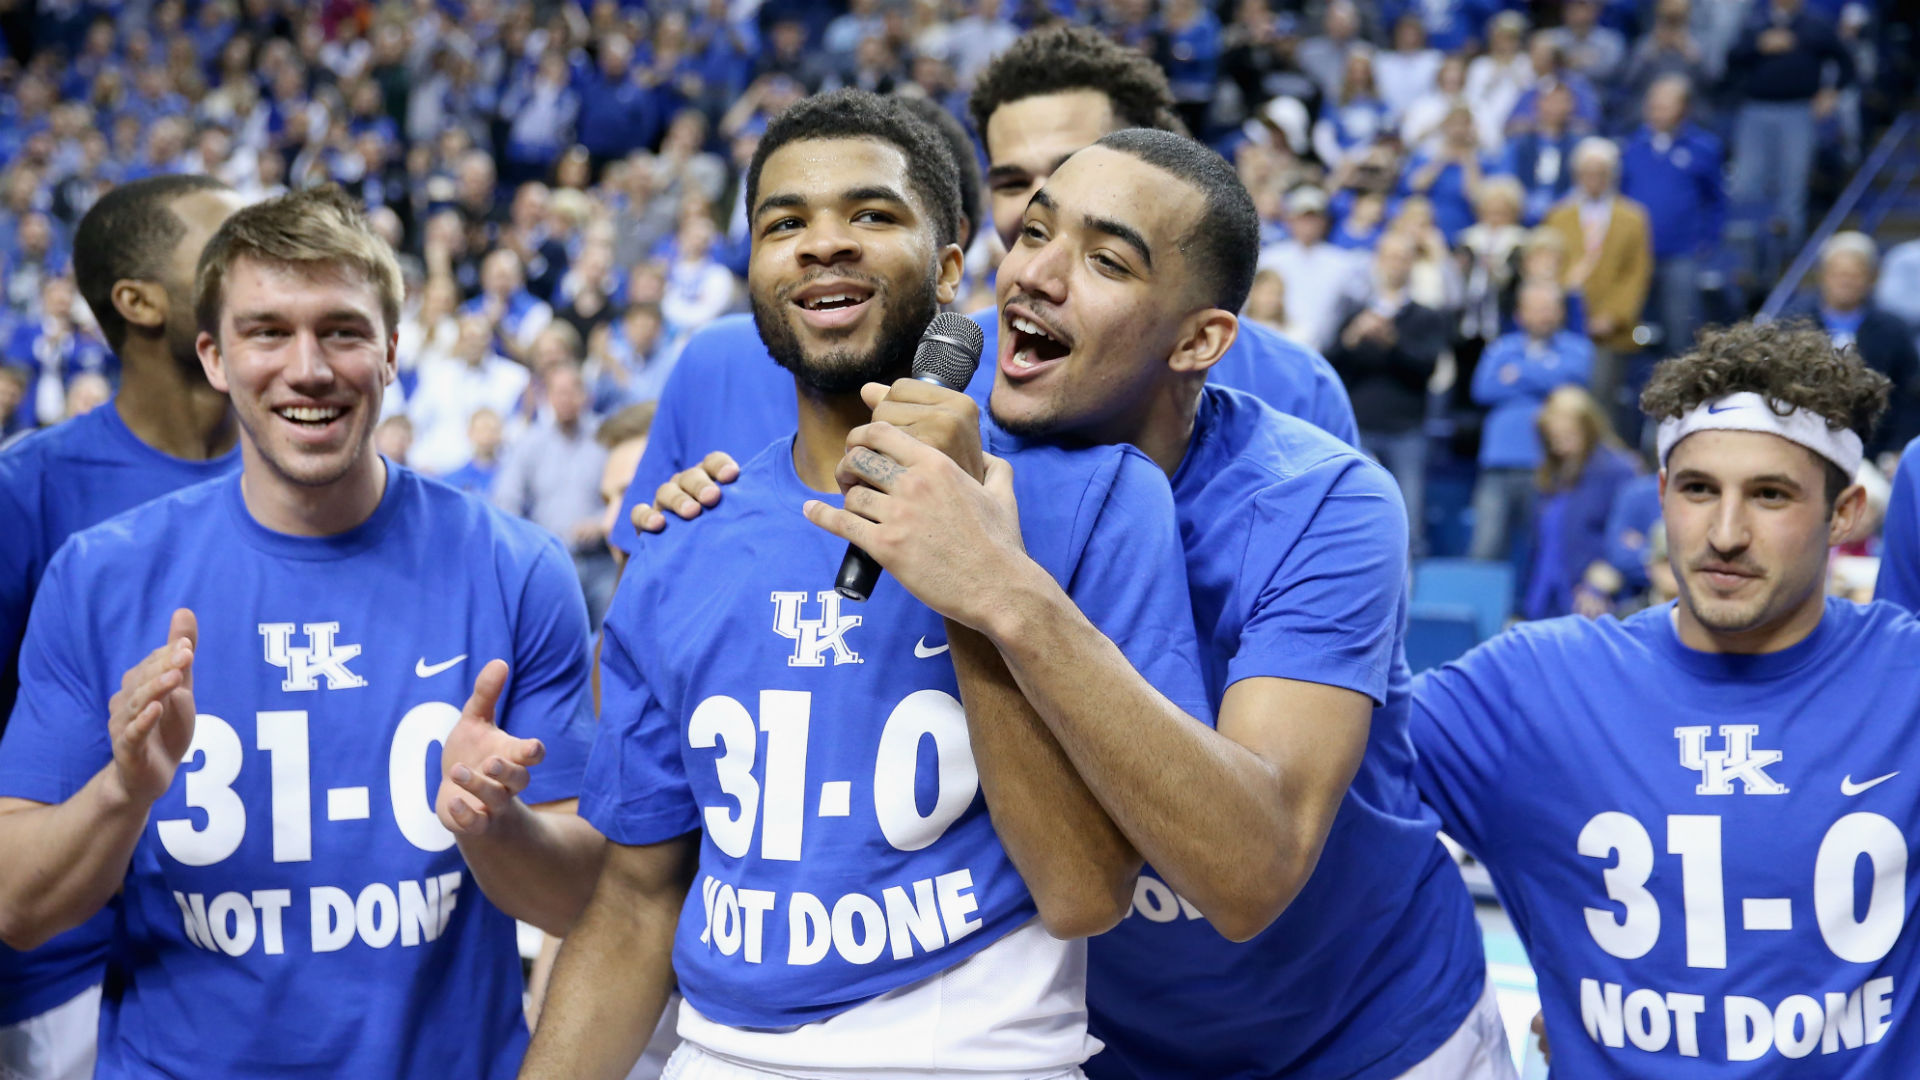 Members of Indiana's undefeated 1976 team are rooting for Kentucky